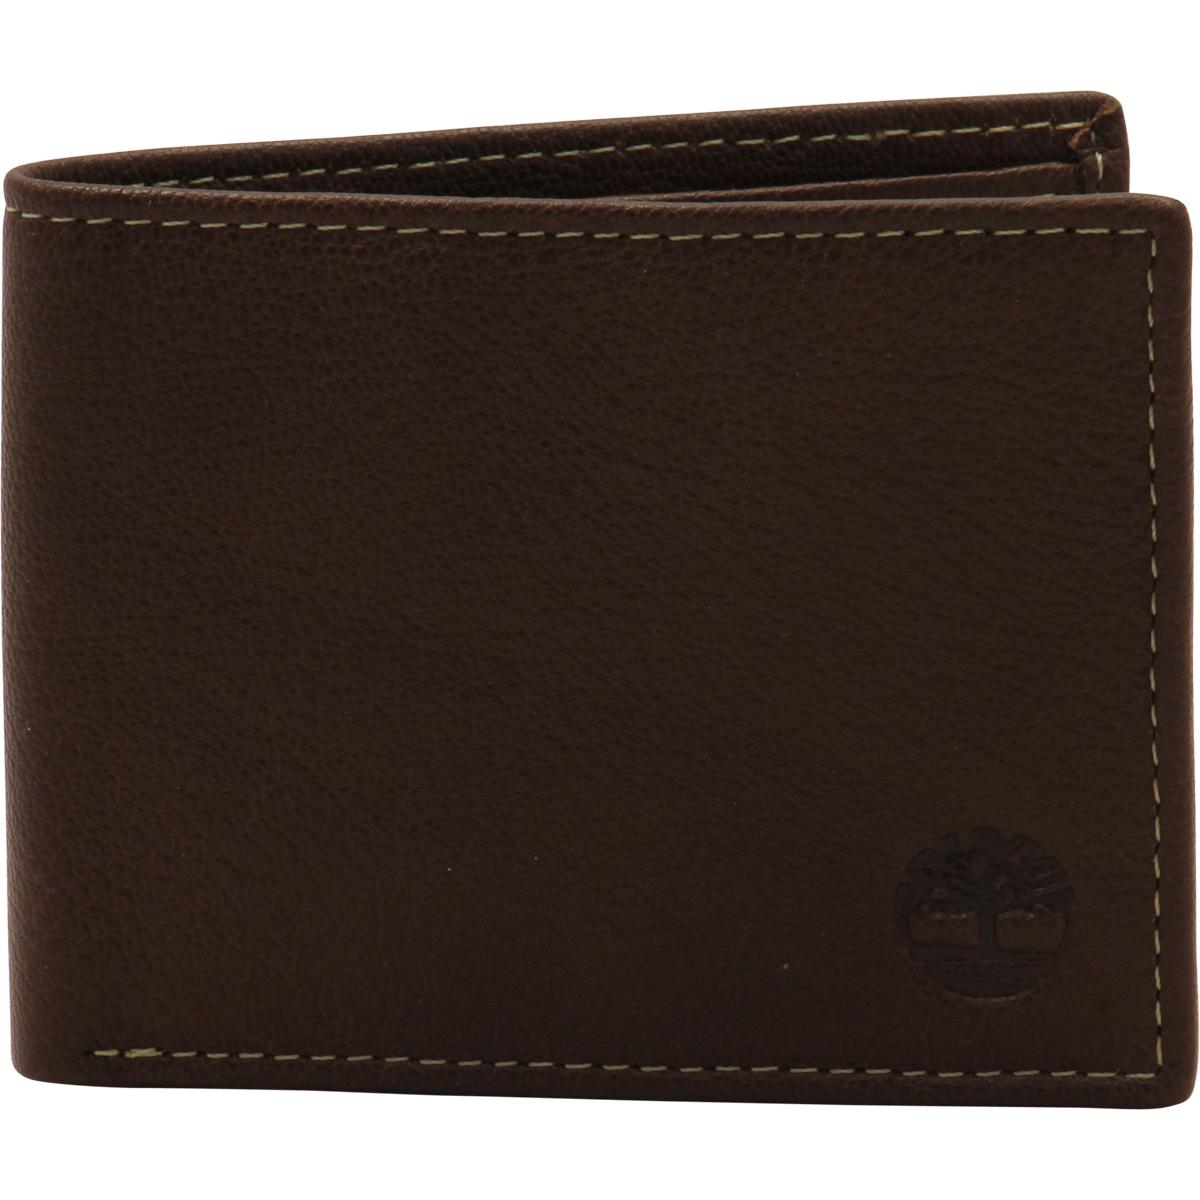 new high quality outlet store reasonable price Timberland Men's Blix Genuine Leather Slim-Fold Wallet